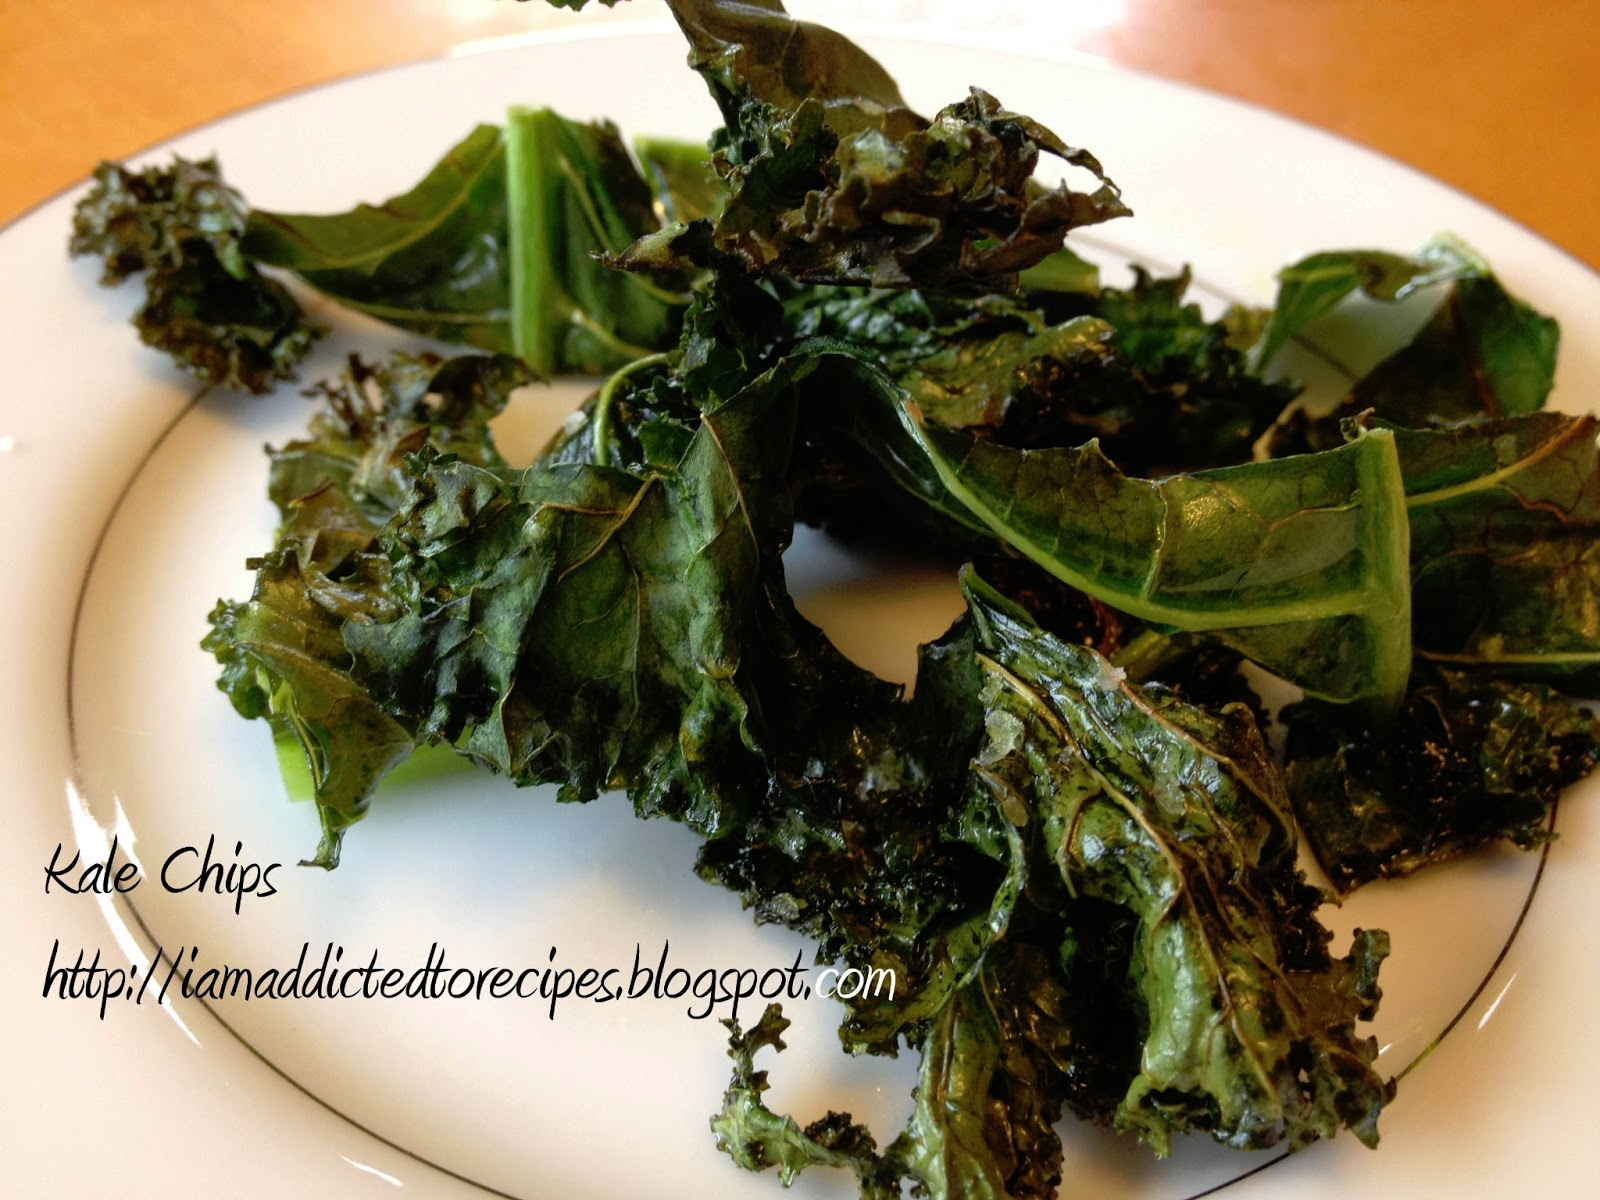 Kale chips Recipe - Tales of a Ranting Ginger